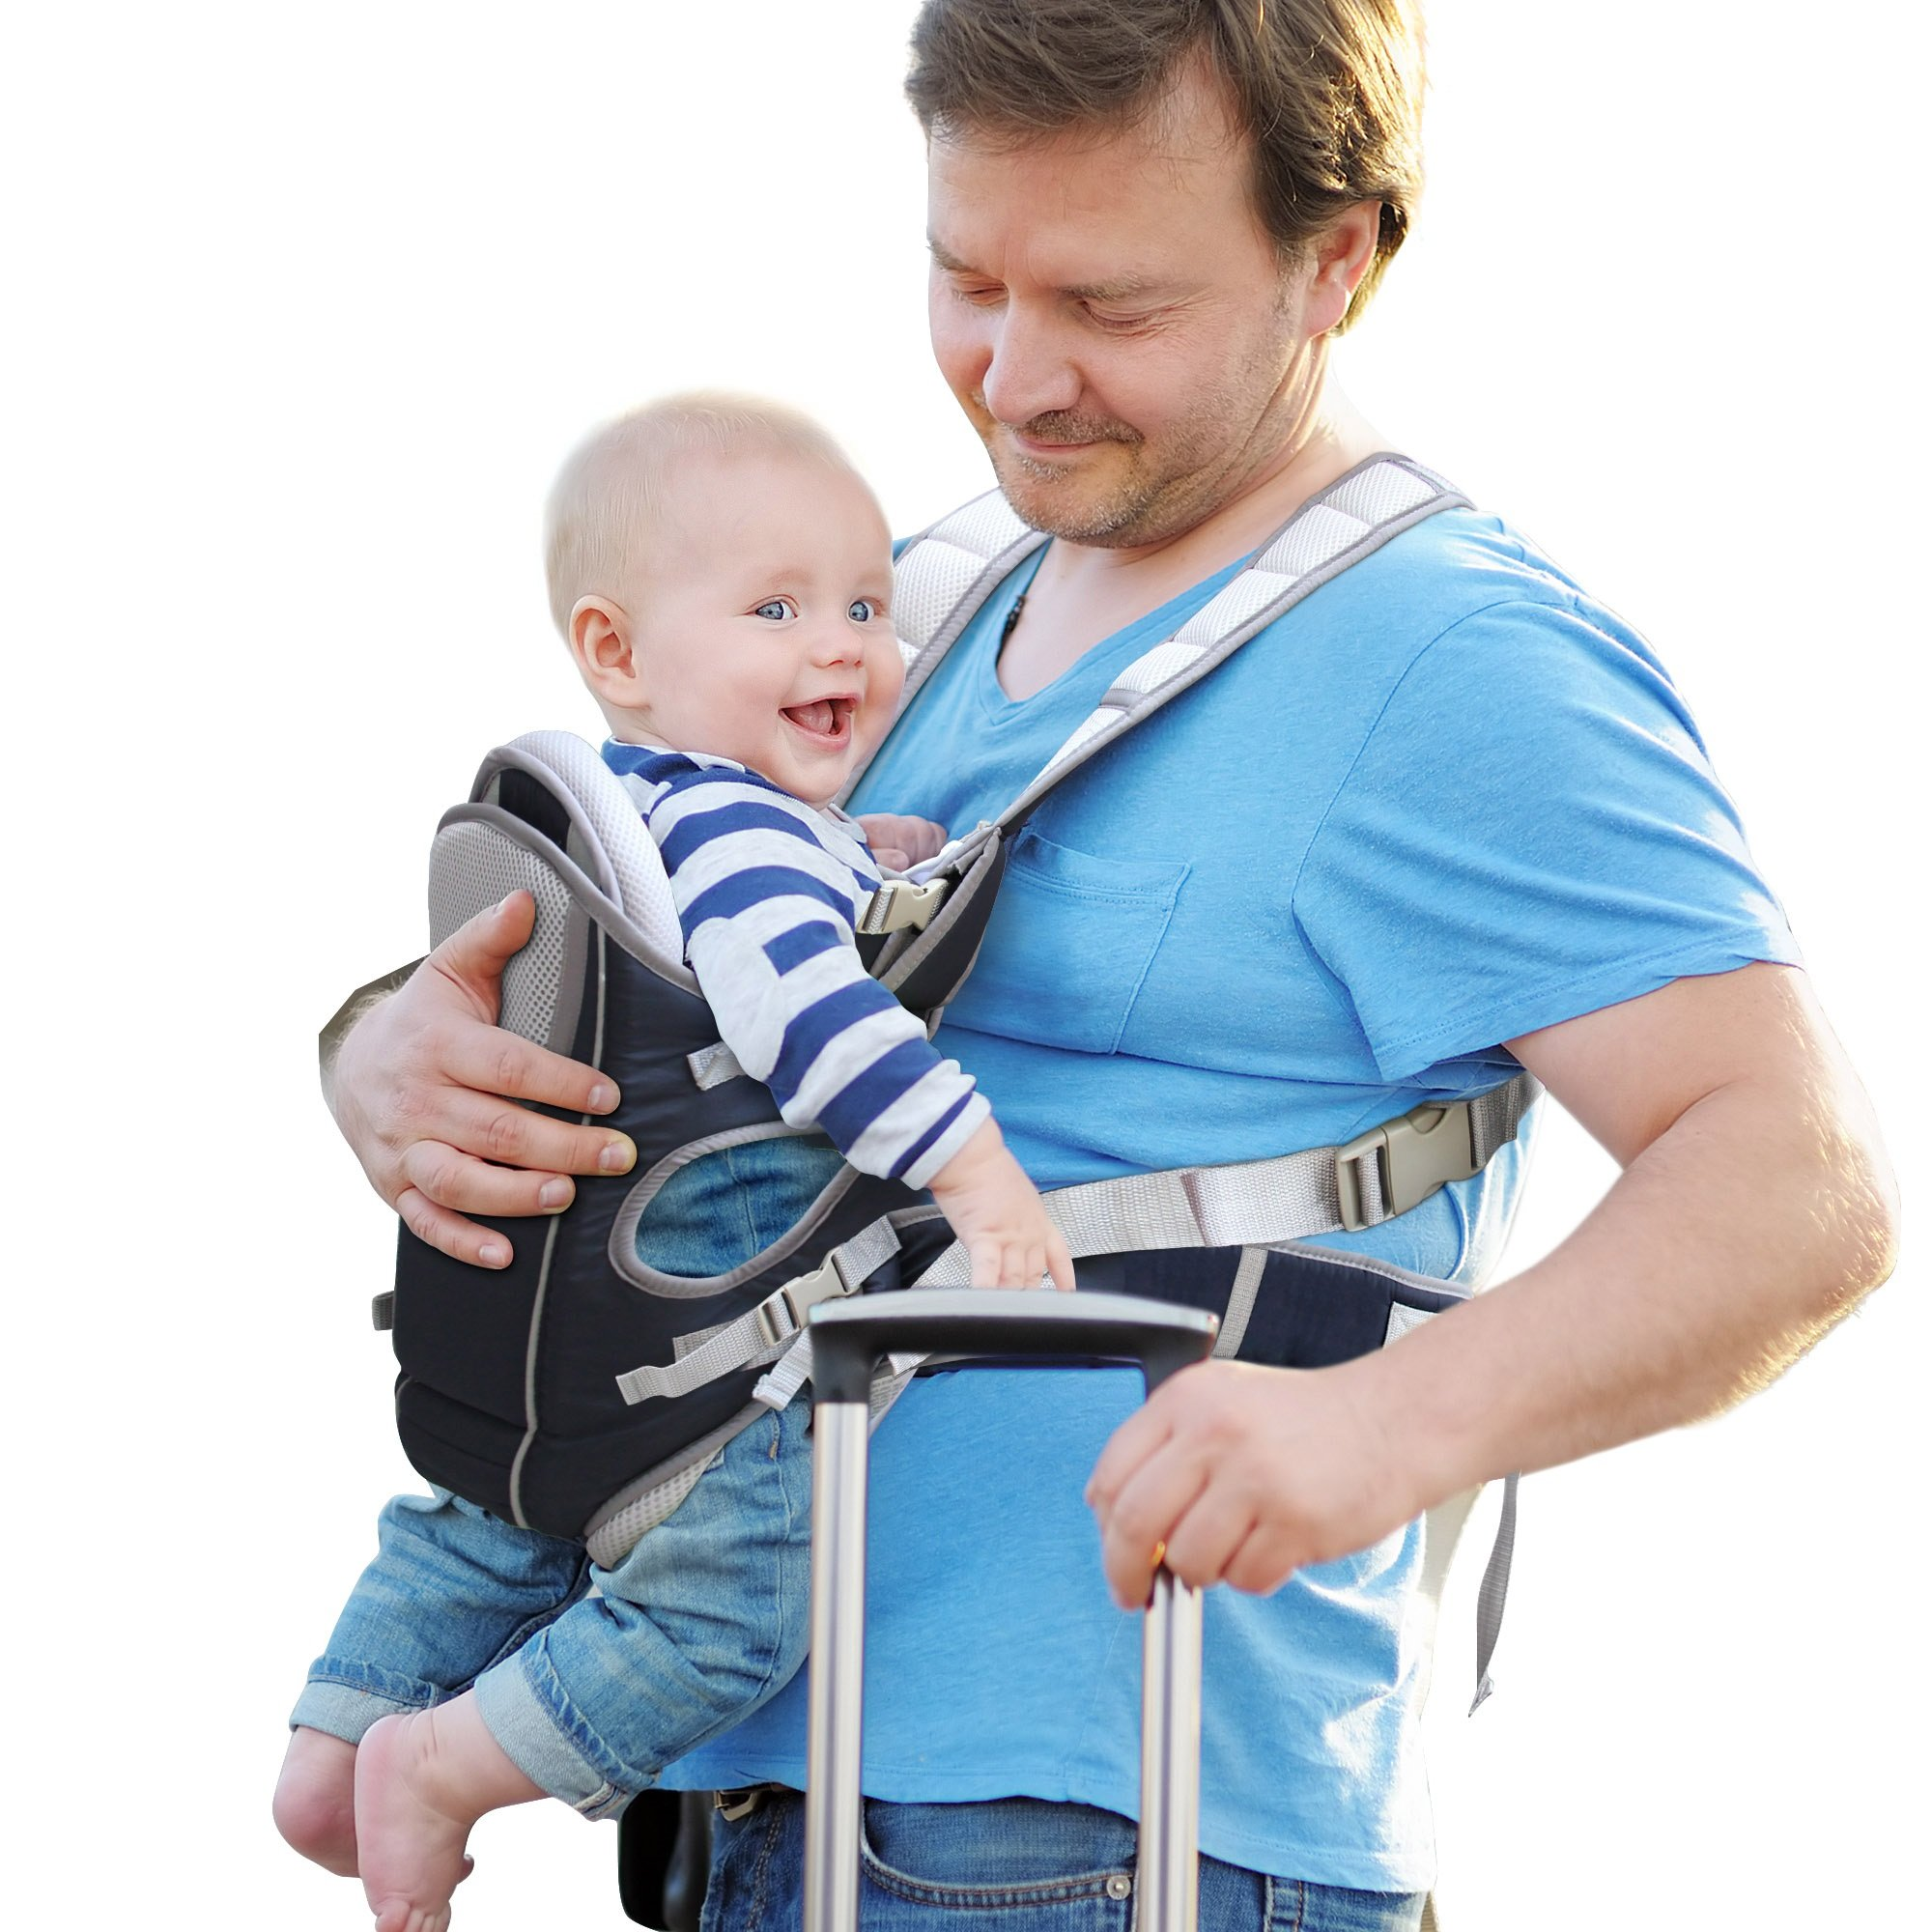 Baby Carrier for Infants and Toddlers - 4 Carrying Positions - 100% Breathable Soft Machine Washable! Adjustable Baby Sling Carrier for Hiking - A Great Baby Shower Gift